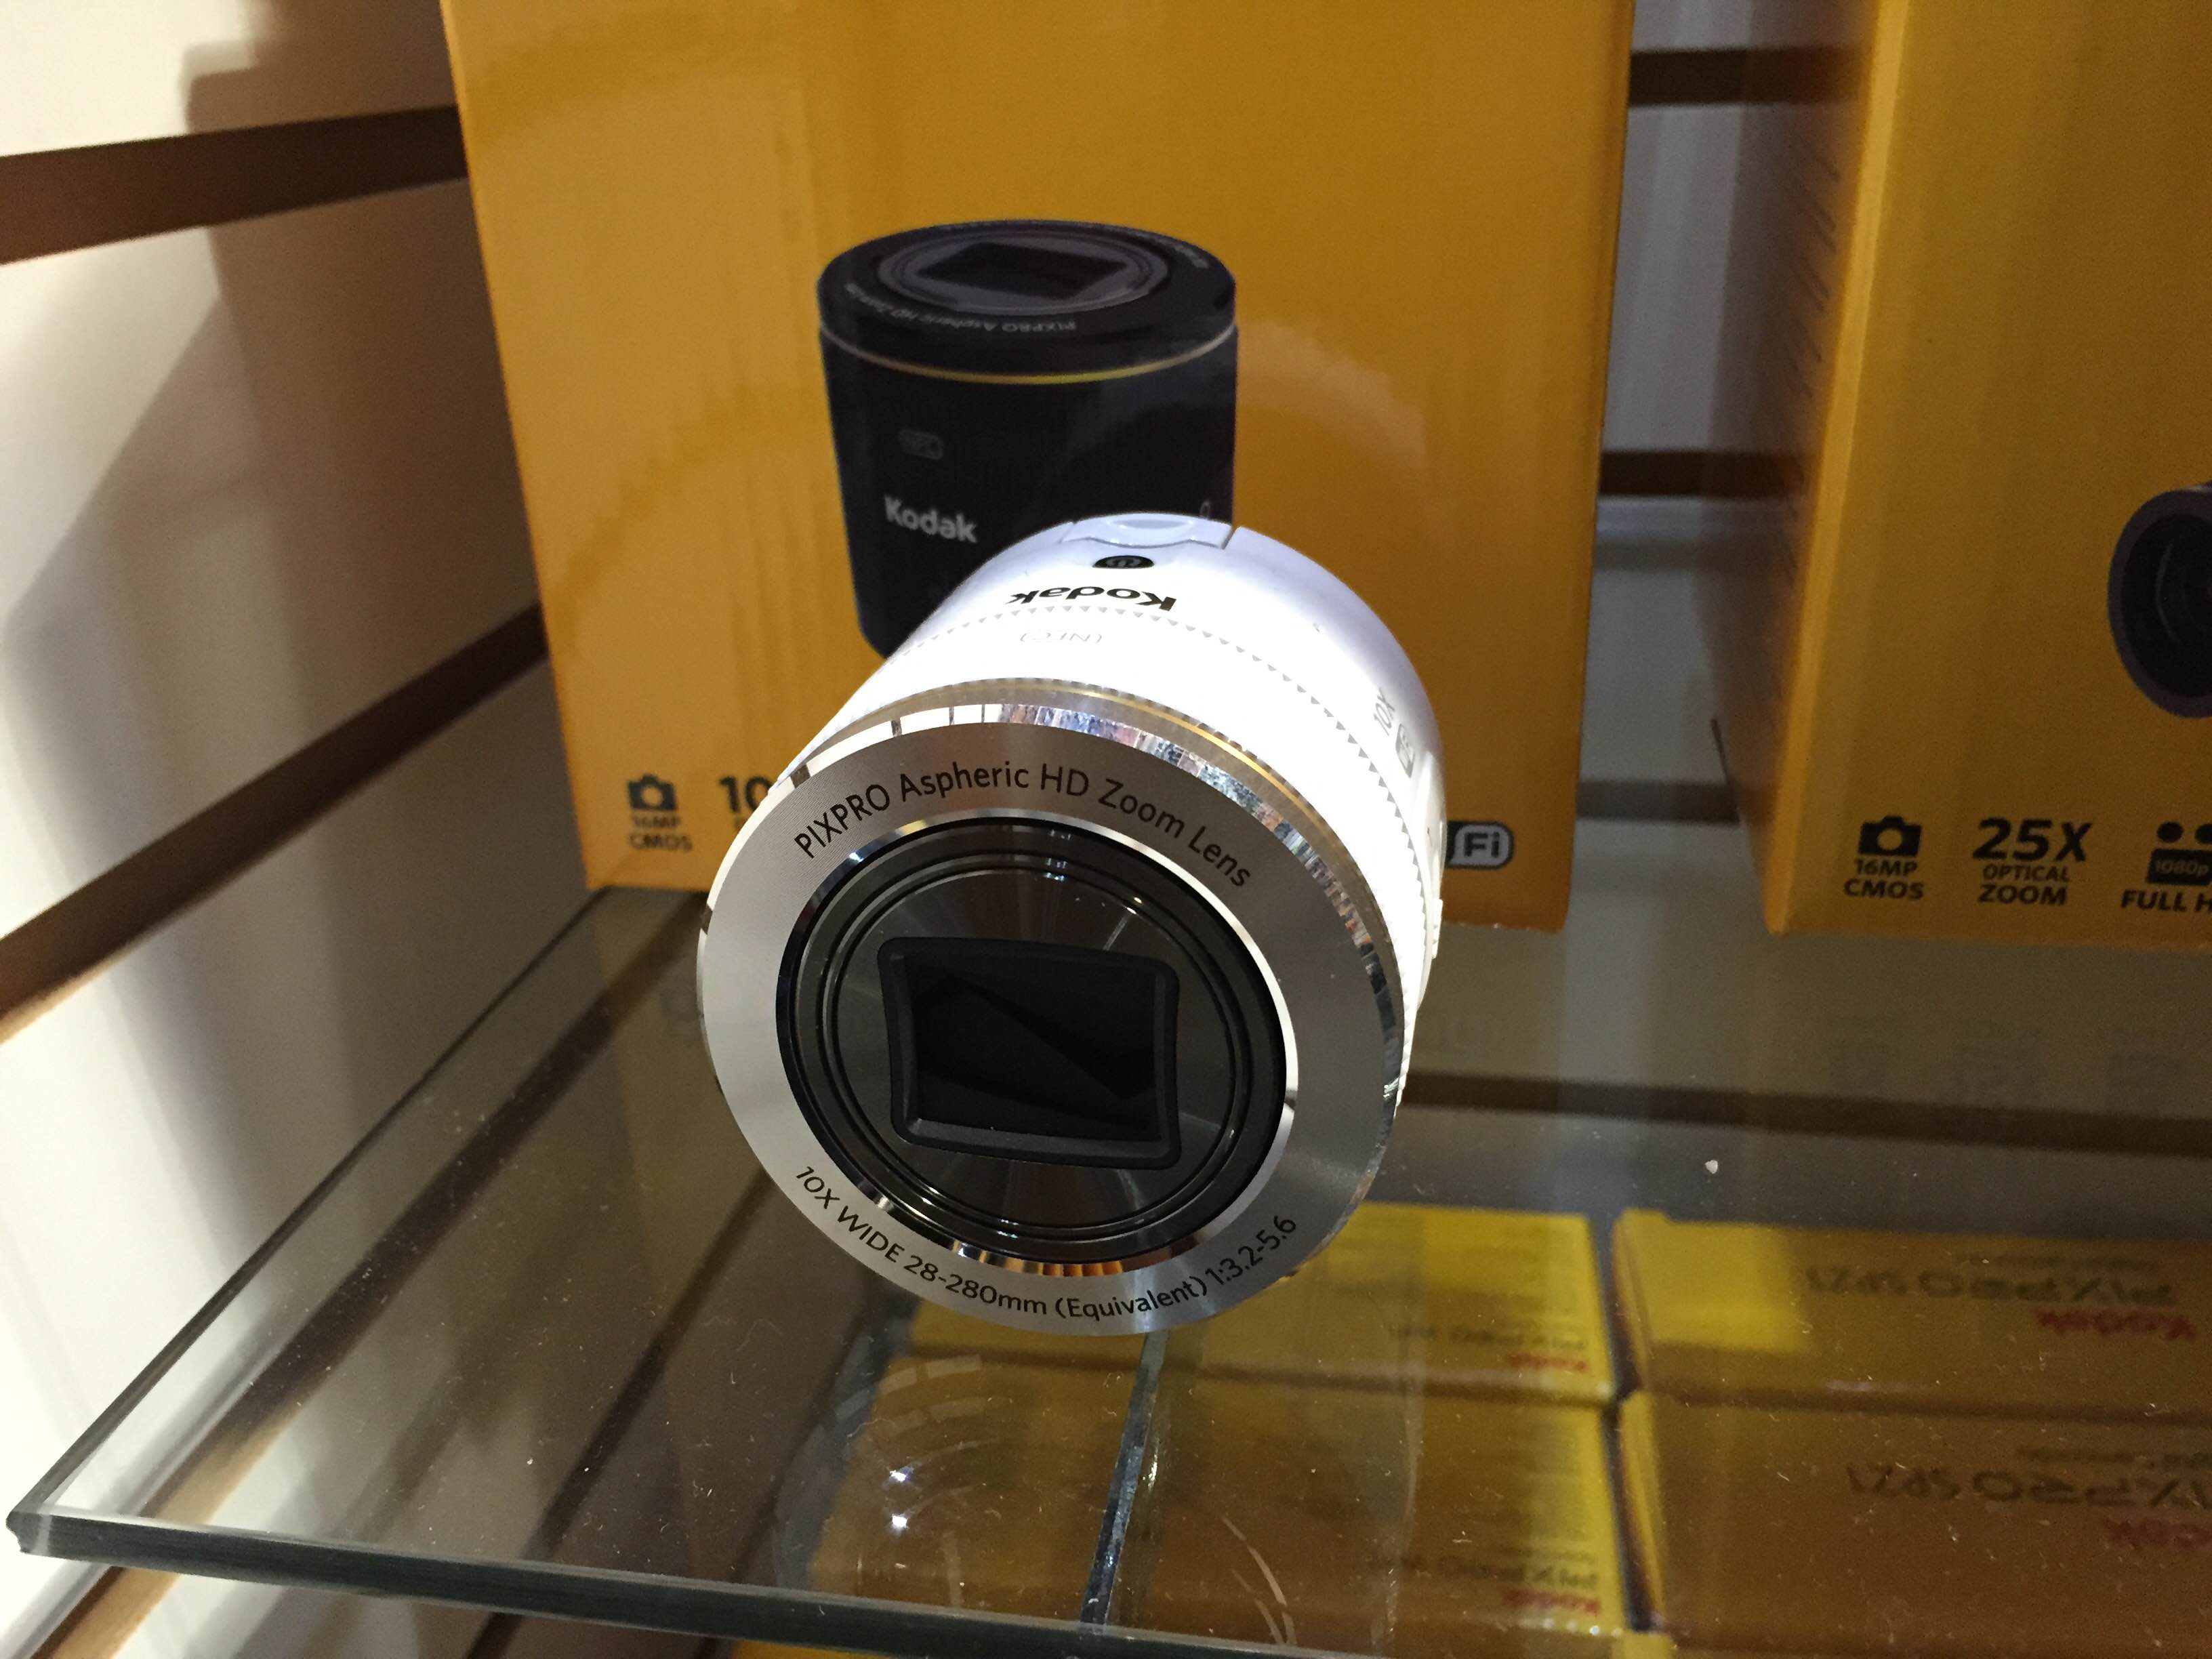 The Kodak smart lens aims to turn consumers' smartphones into professional grade photographic machines.